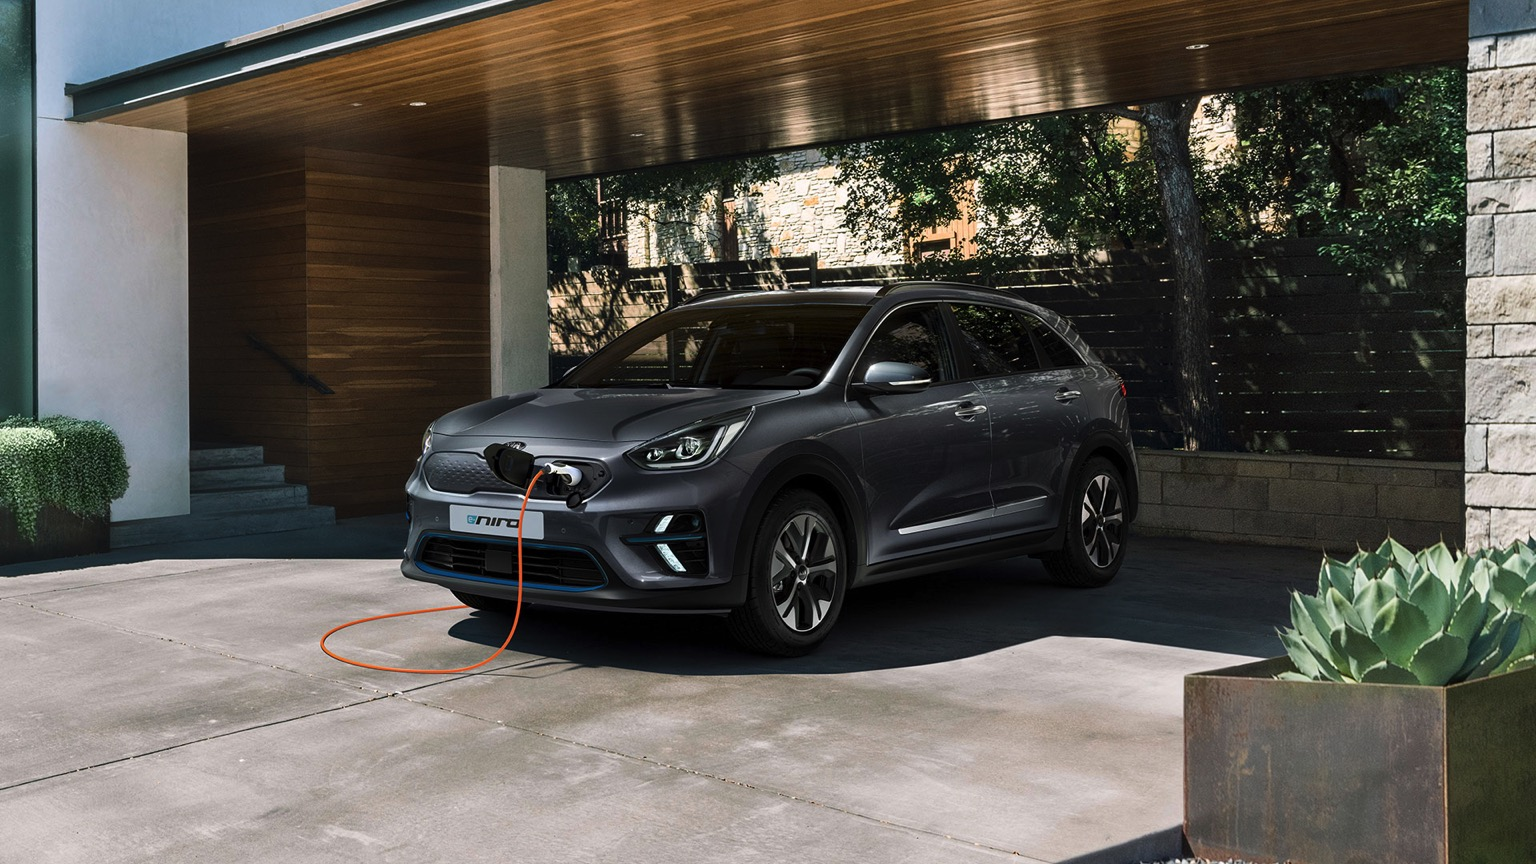 Kia e-niro home charging